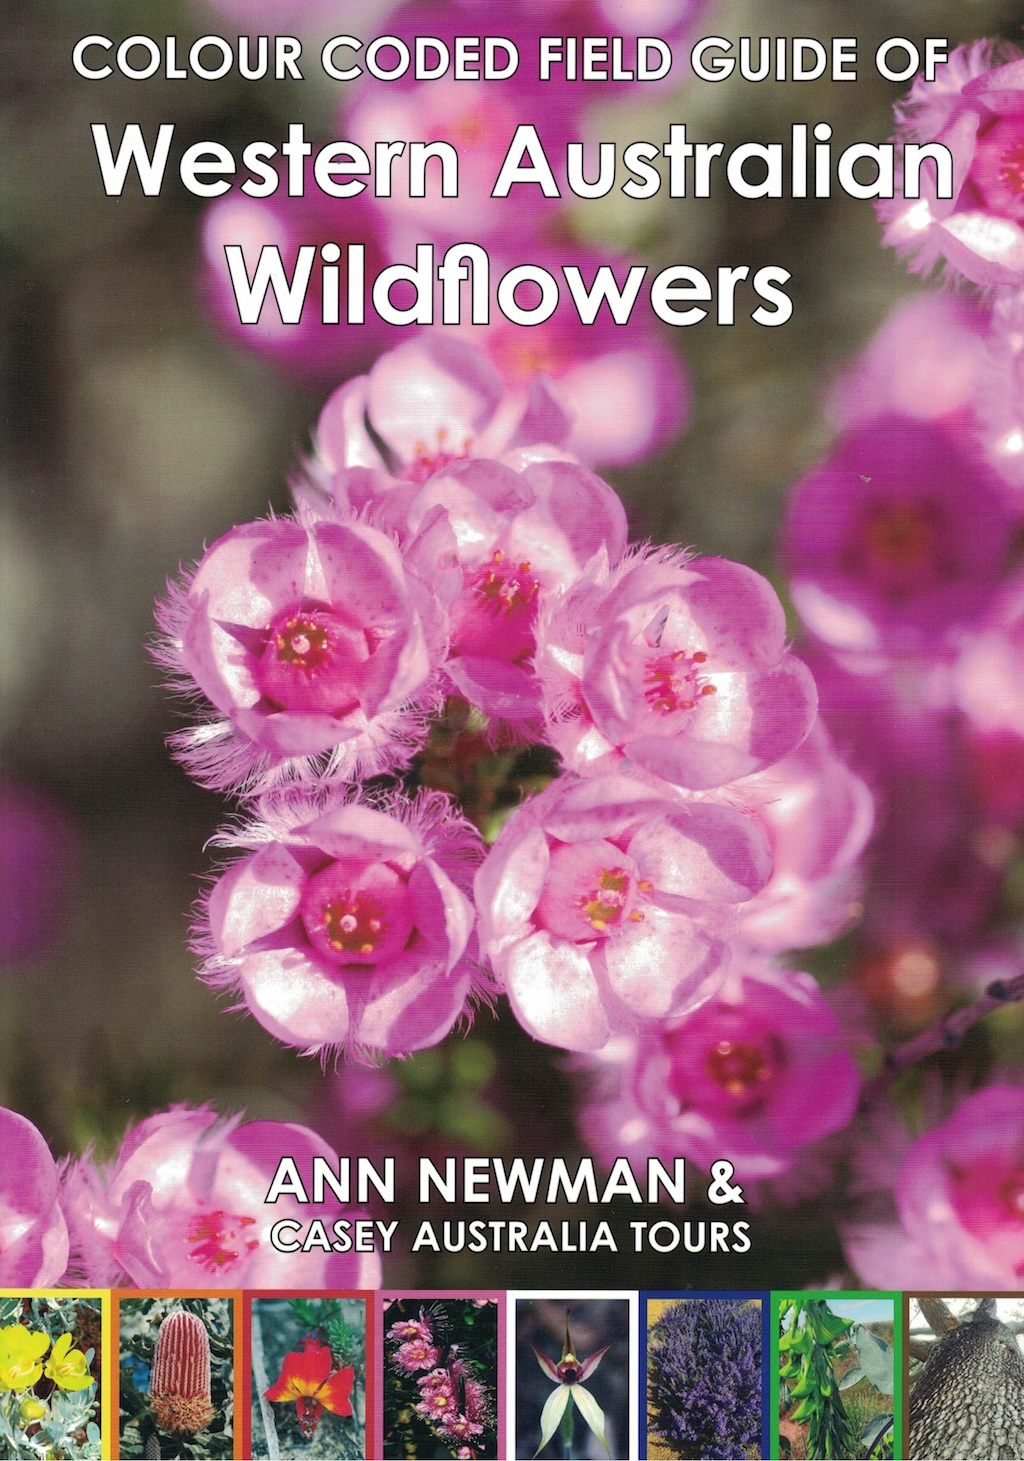 Colour Coded Field Guide Australian Wildlflowers by Ann Newman and Casey Australia Tours